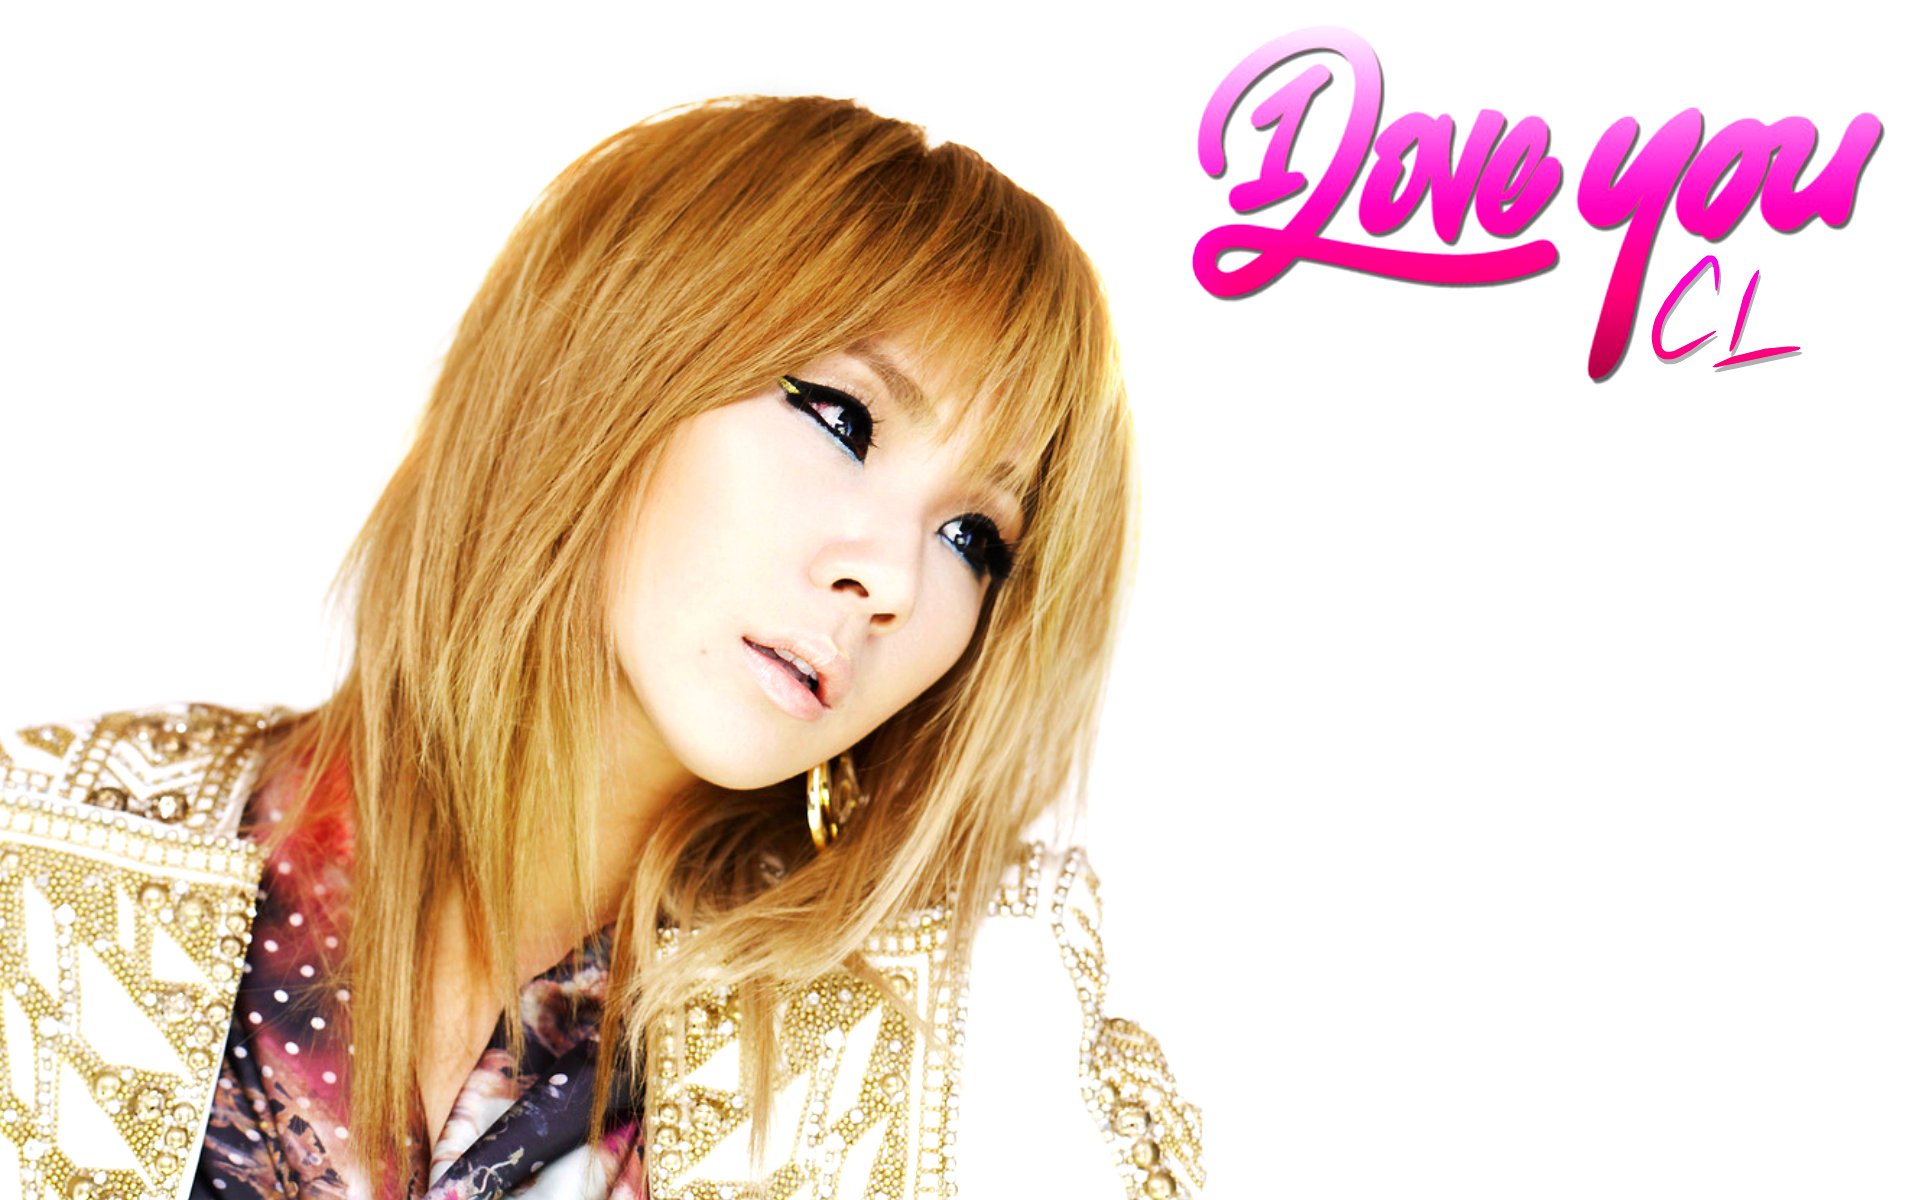 2NE1 Images   Icons, Wallpapers and Photos on Fanpop